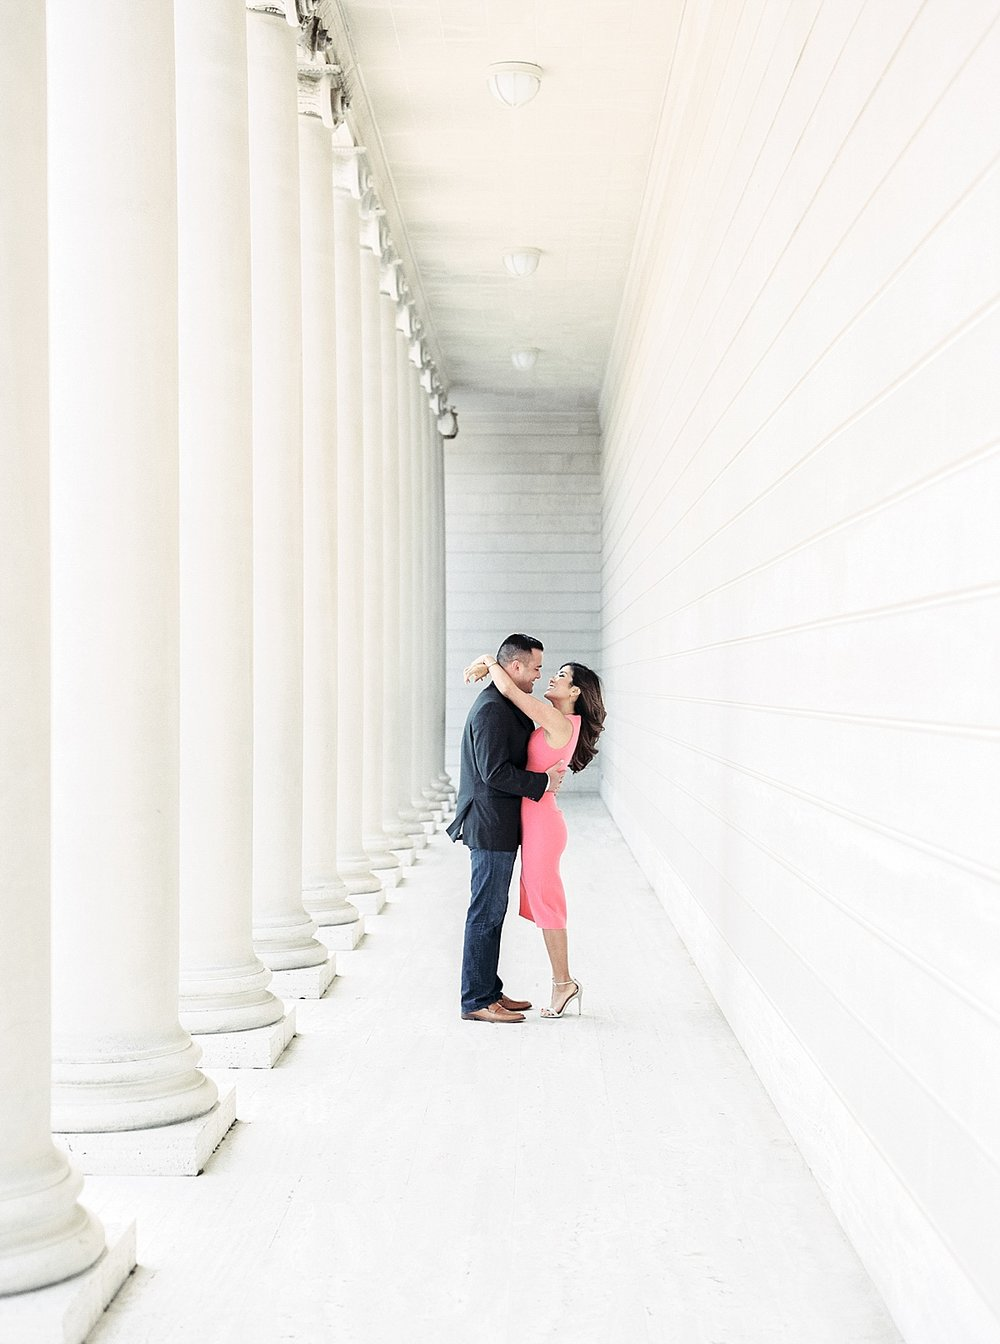 fine-art-san-francisco-engagement-photos-taralynn-lawton